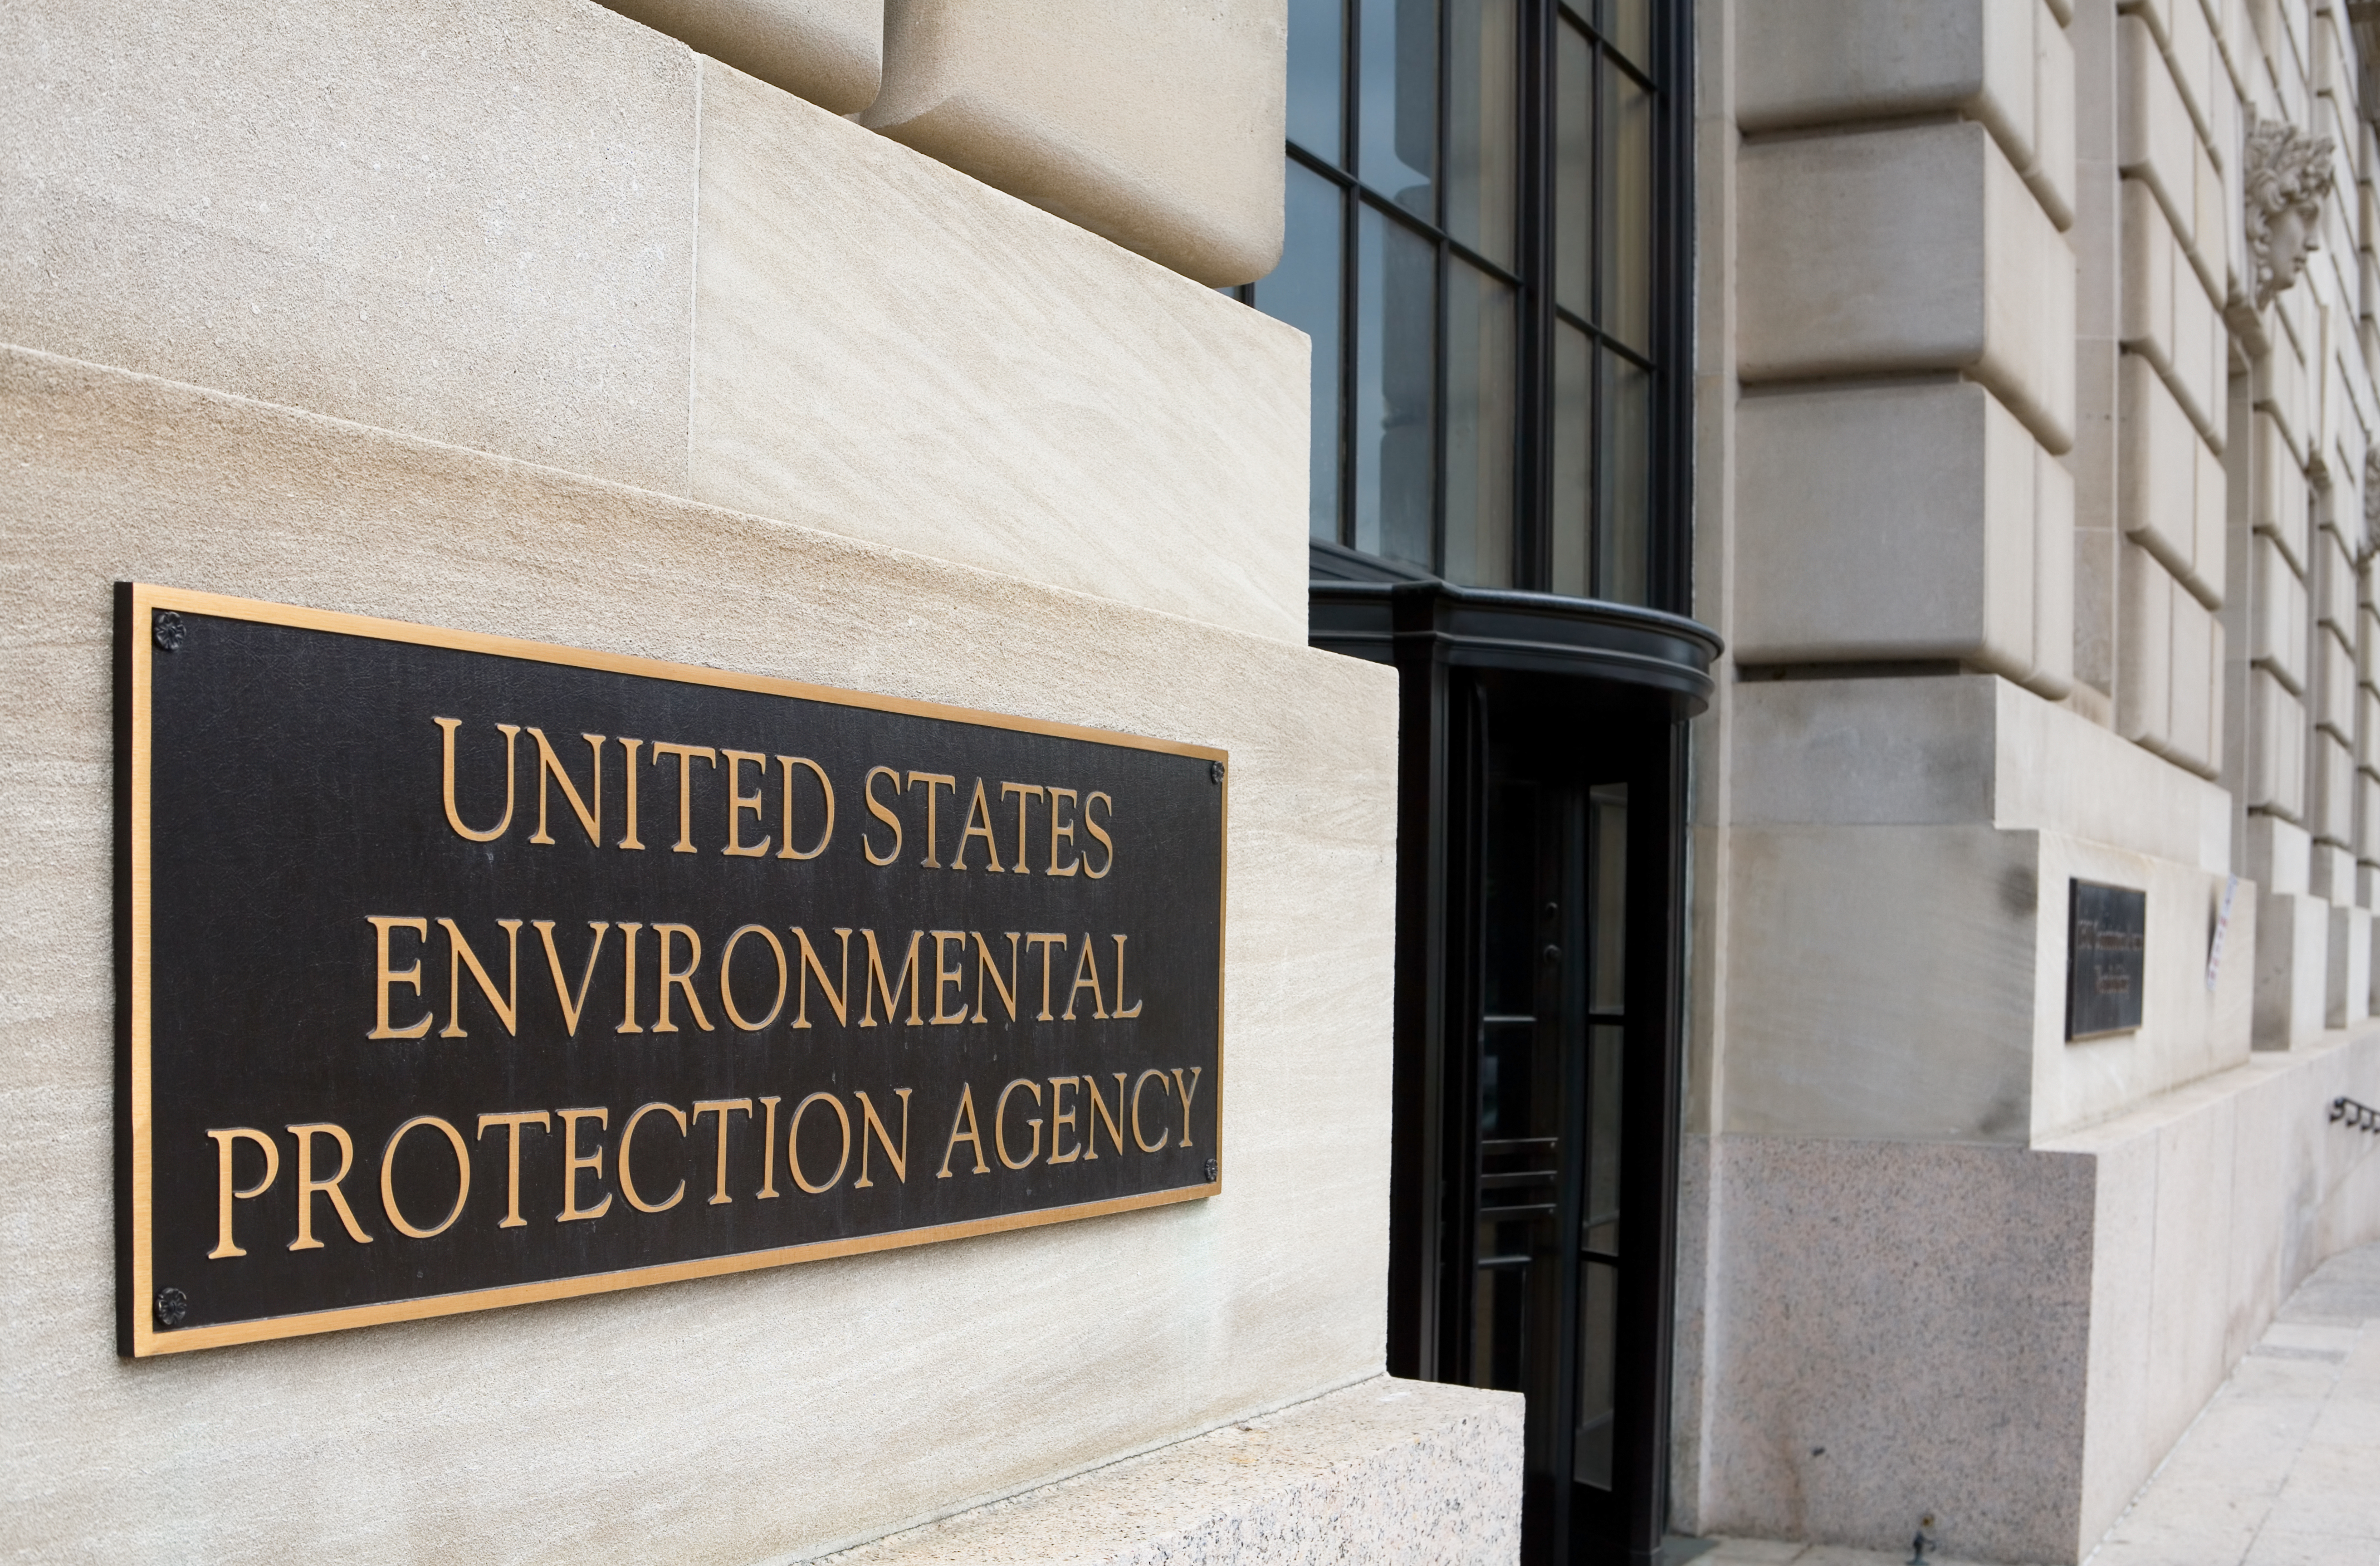 Environmental Protection Agency Headquarters Building in Washington DC